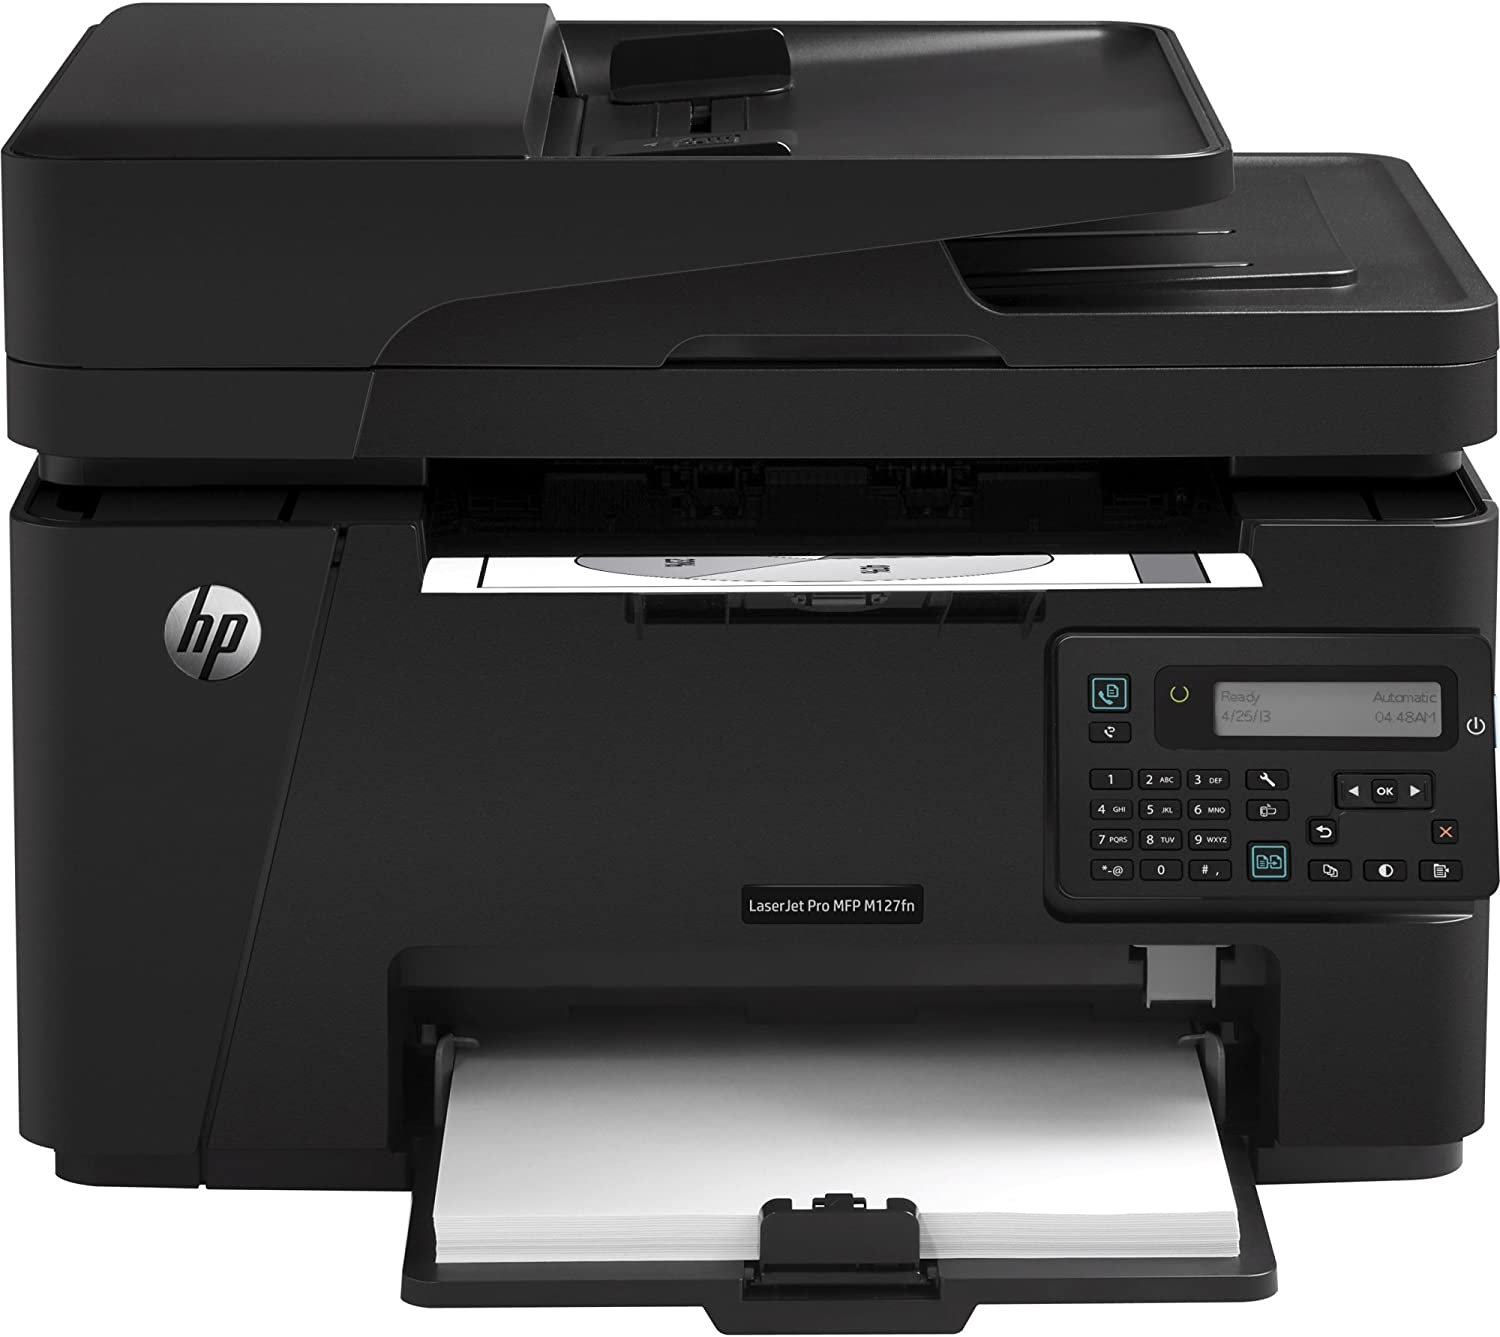 HP LASERJET PRO MFP M127fn - Print speed up to 21 ppm black. Scan resolution up to 1200 x 1200 dpi hardware and up to 1200 x 1200 dpi optical. Copy resolution up to 600 x 600. 2 line LCD text display.